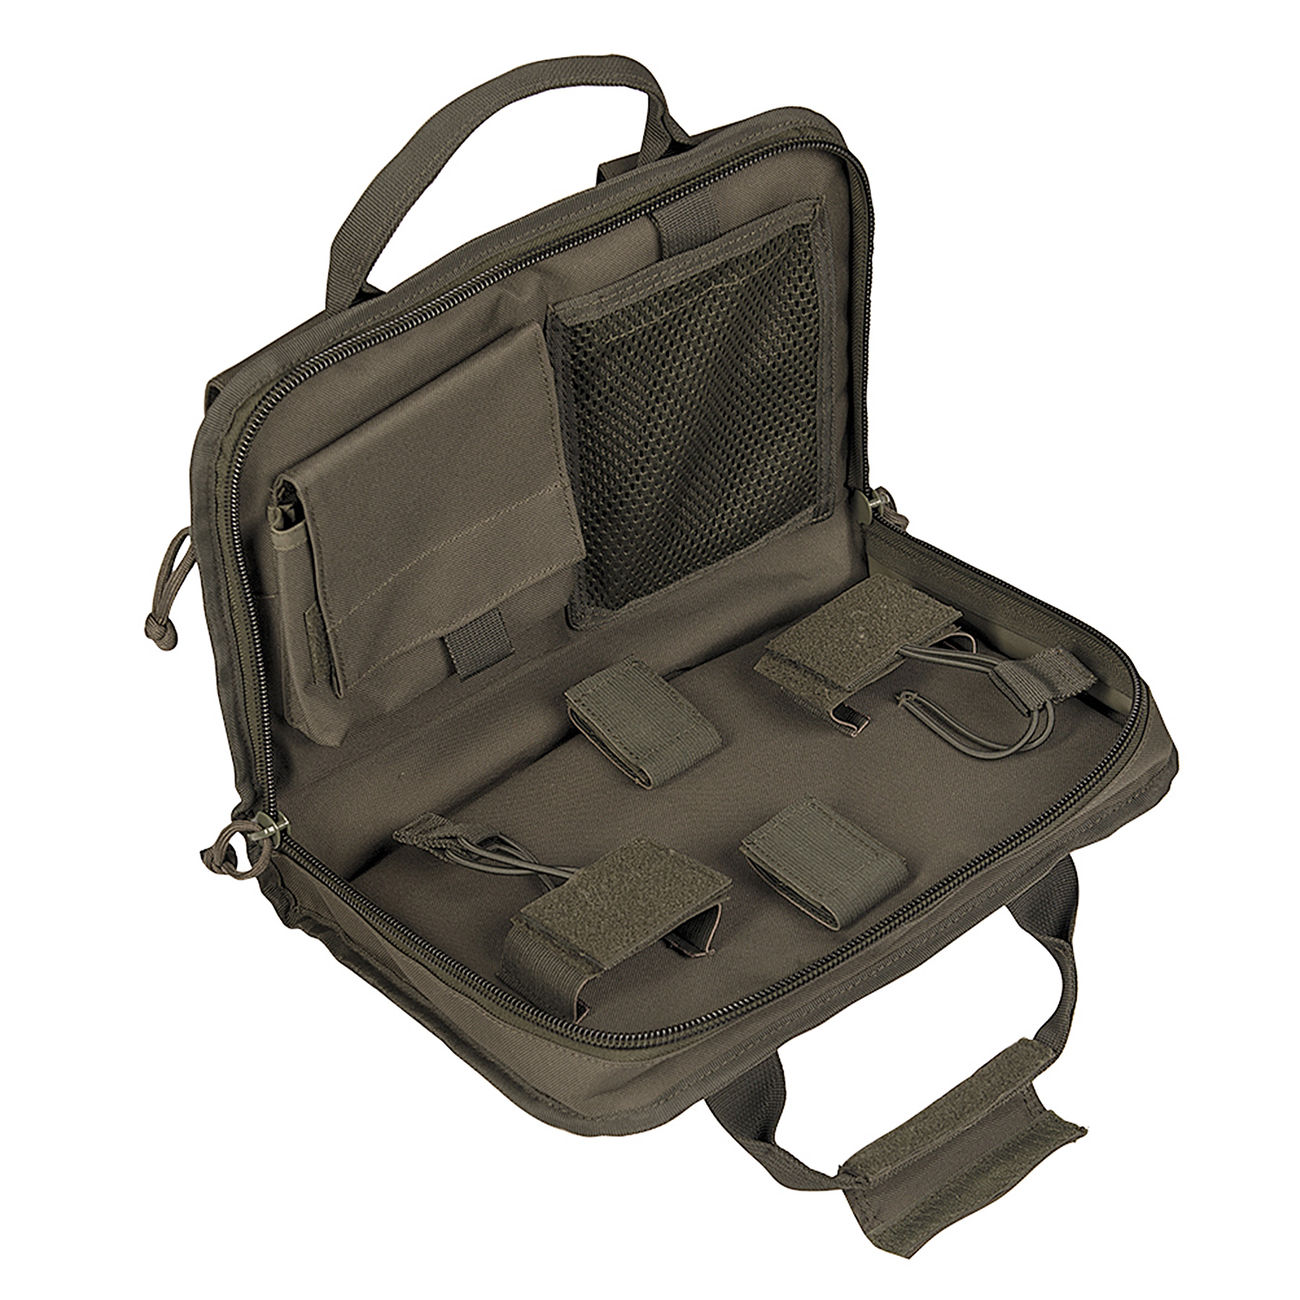 Mil-Tec Tactical Pistol Case Small oliv 1